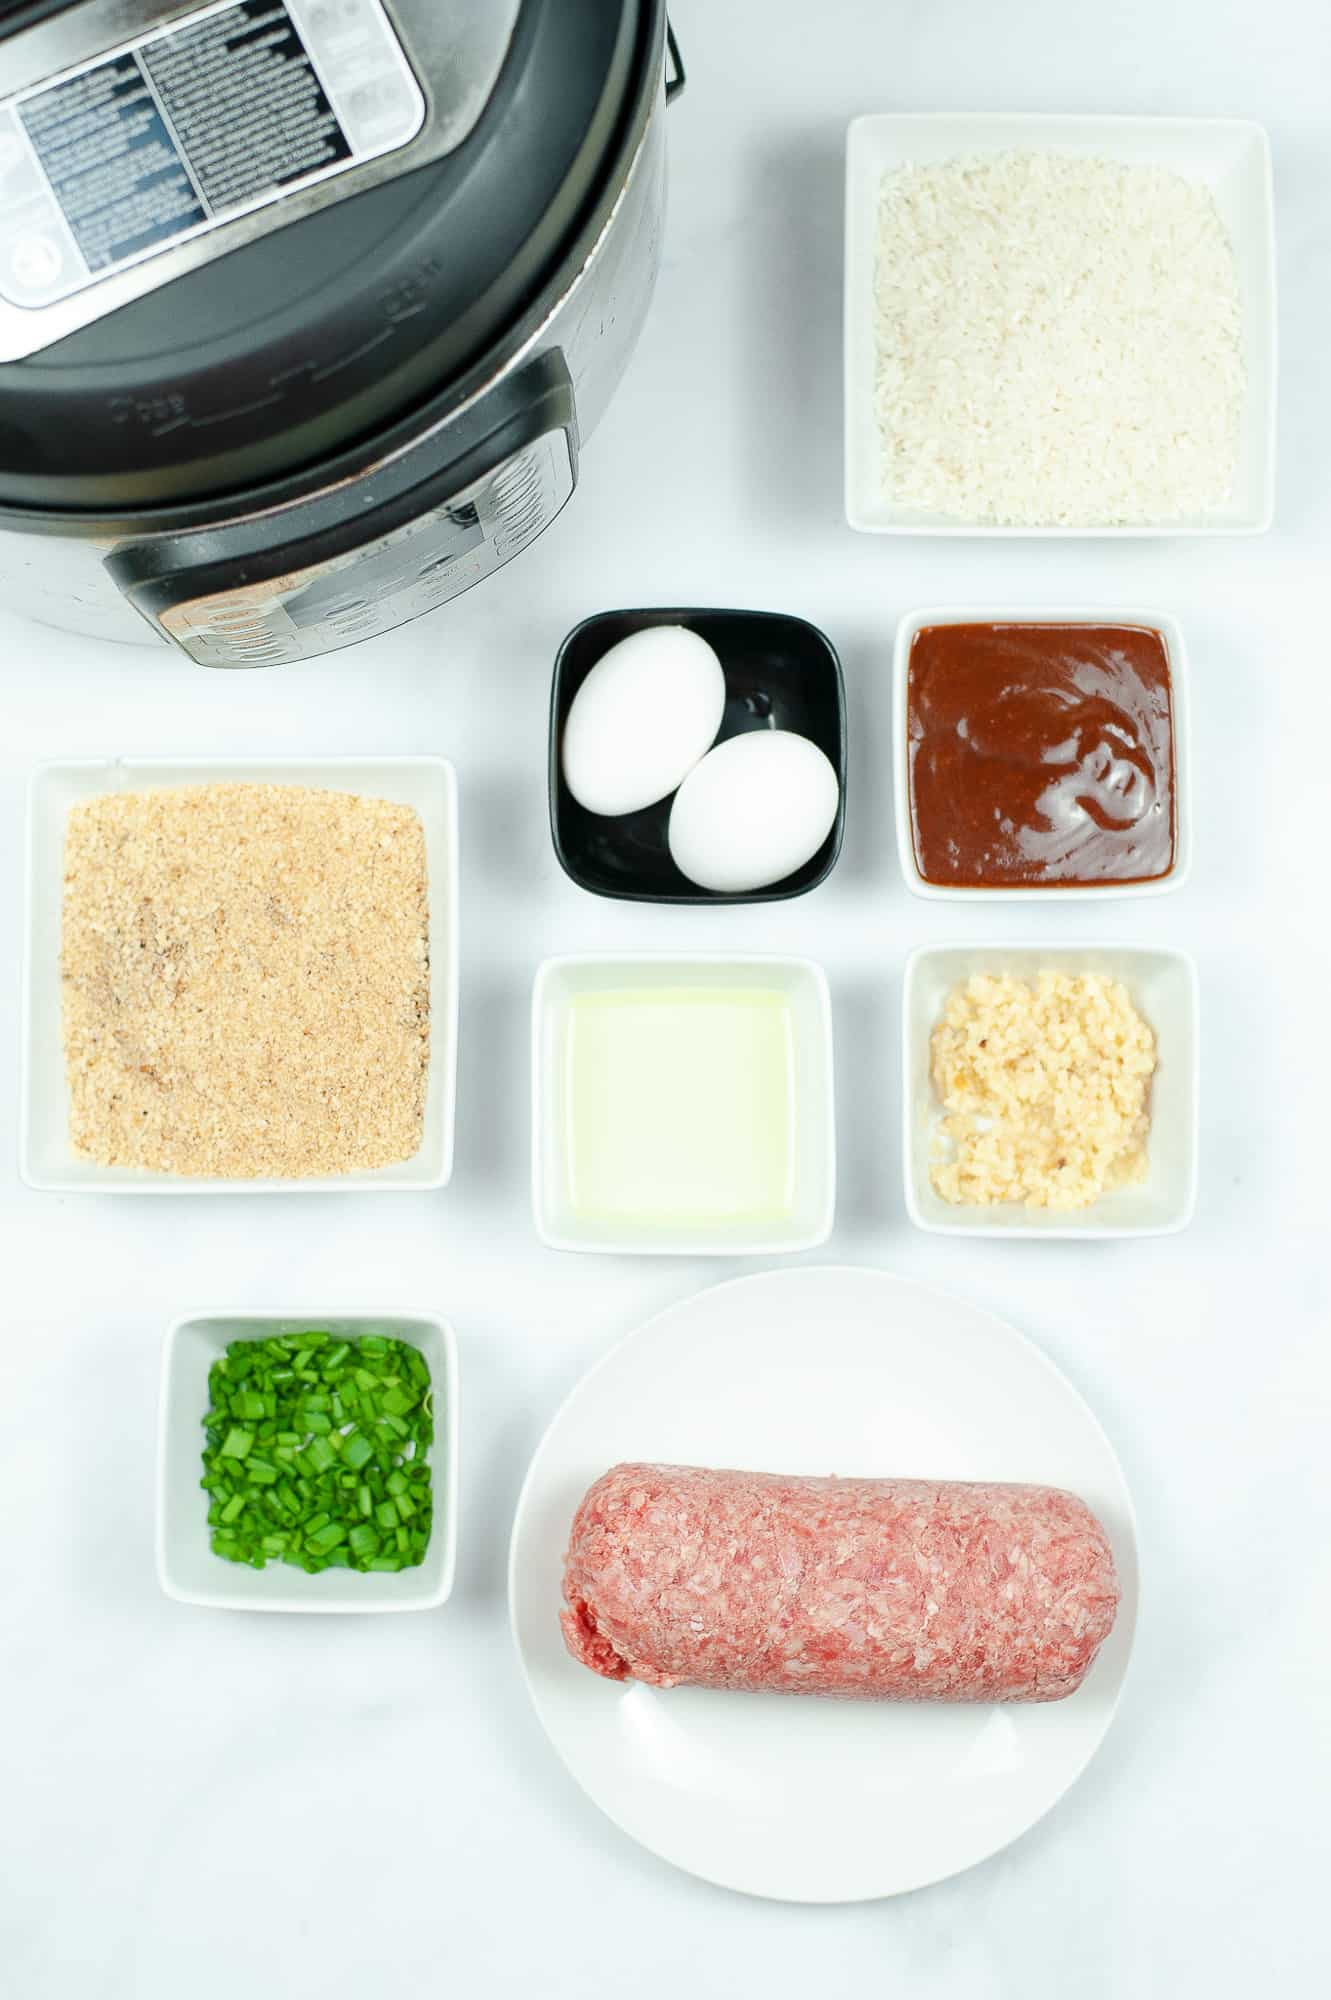 asian meatball ingredients in ingredient bowls on counter